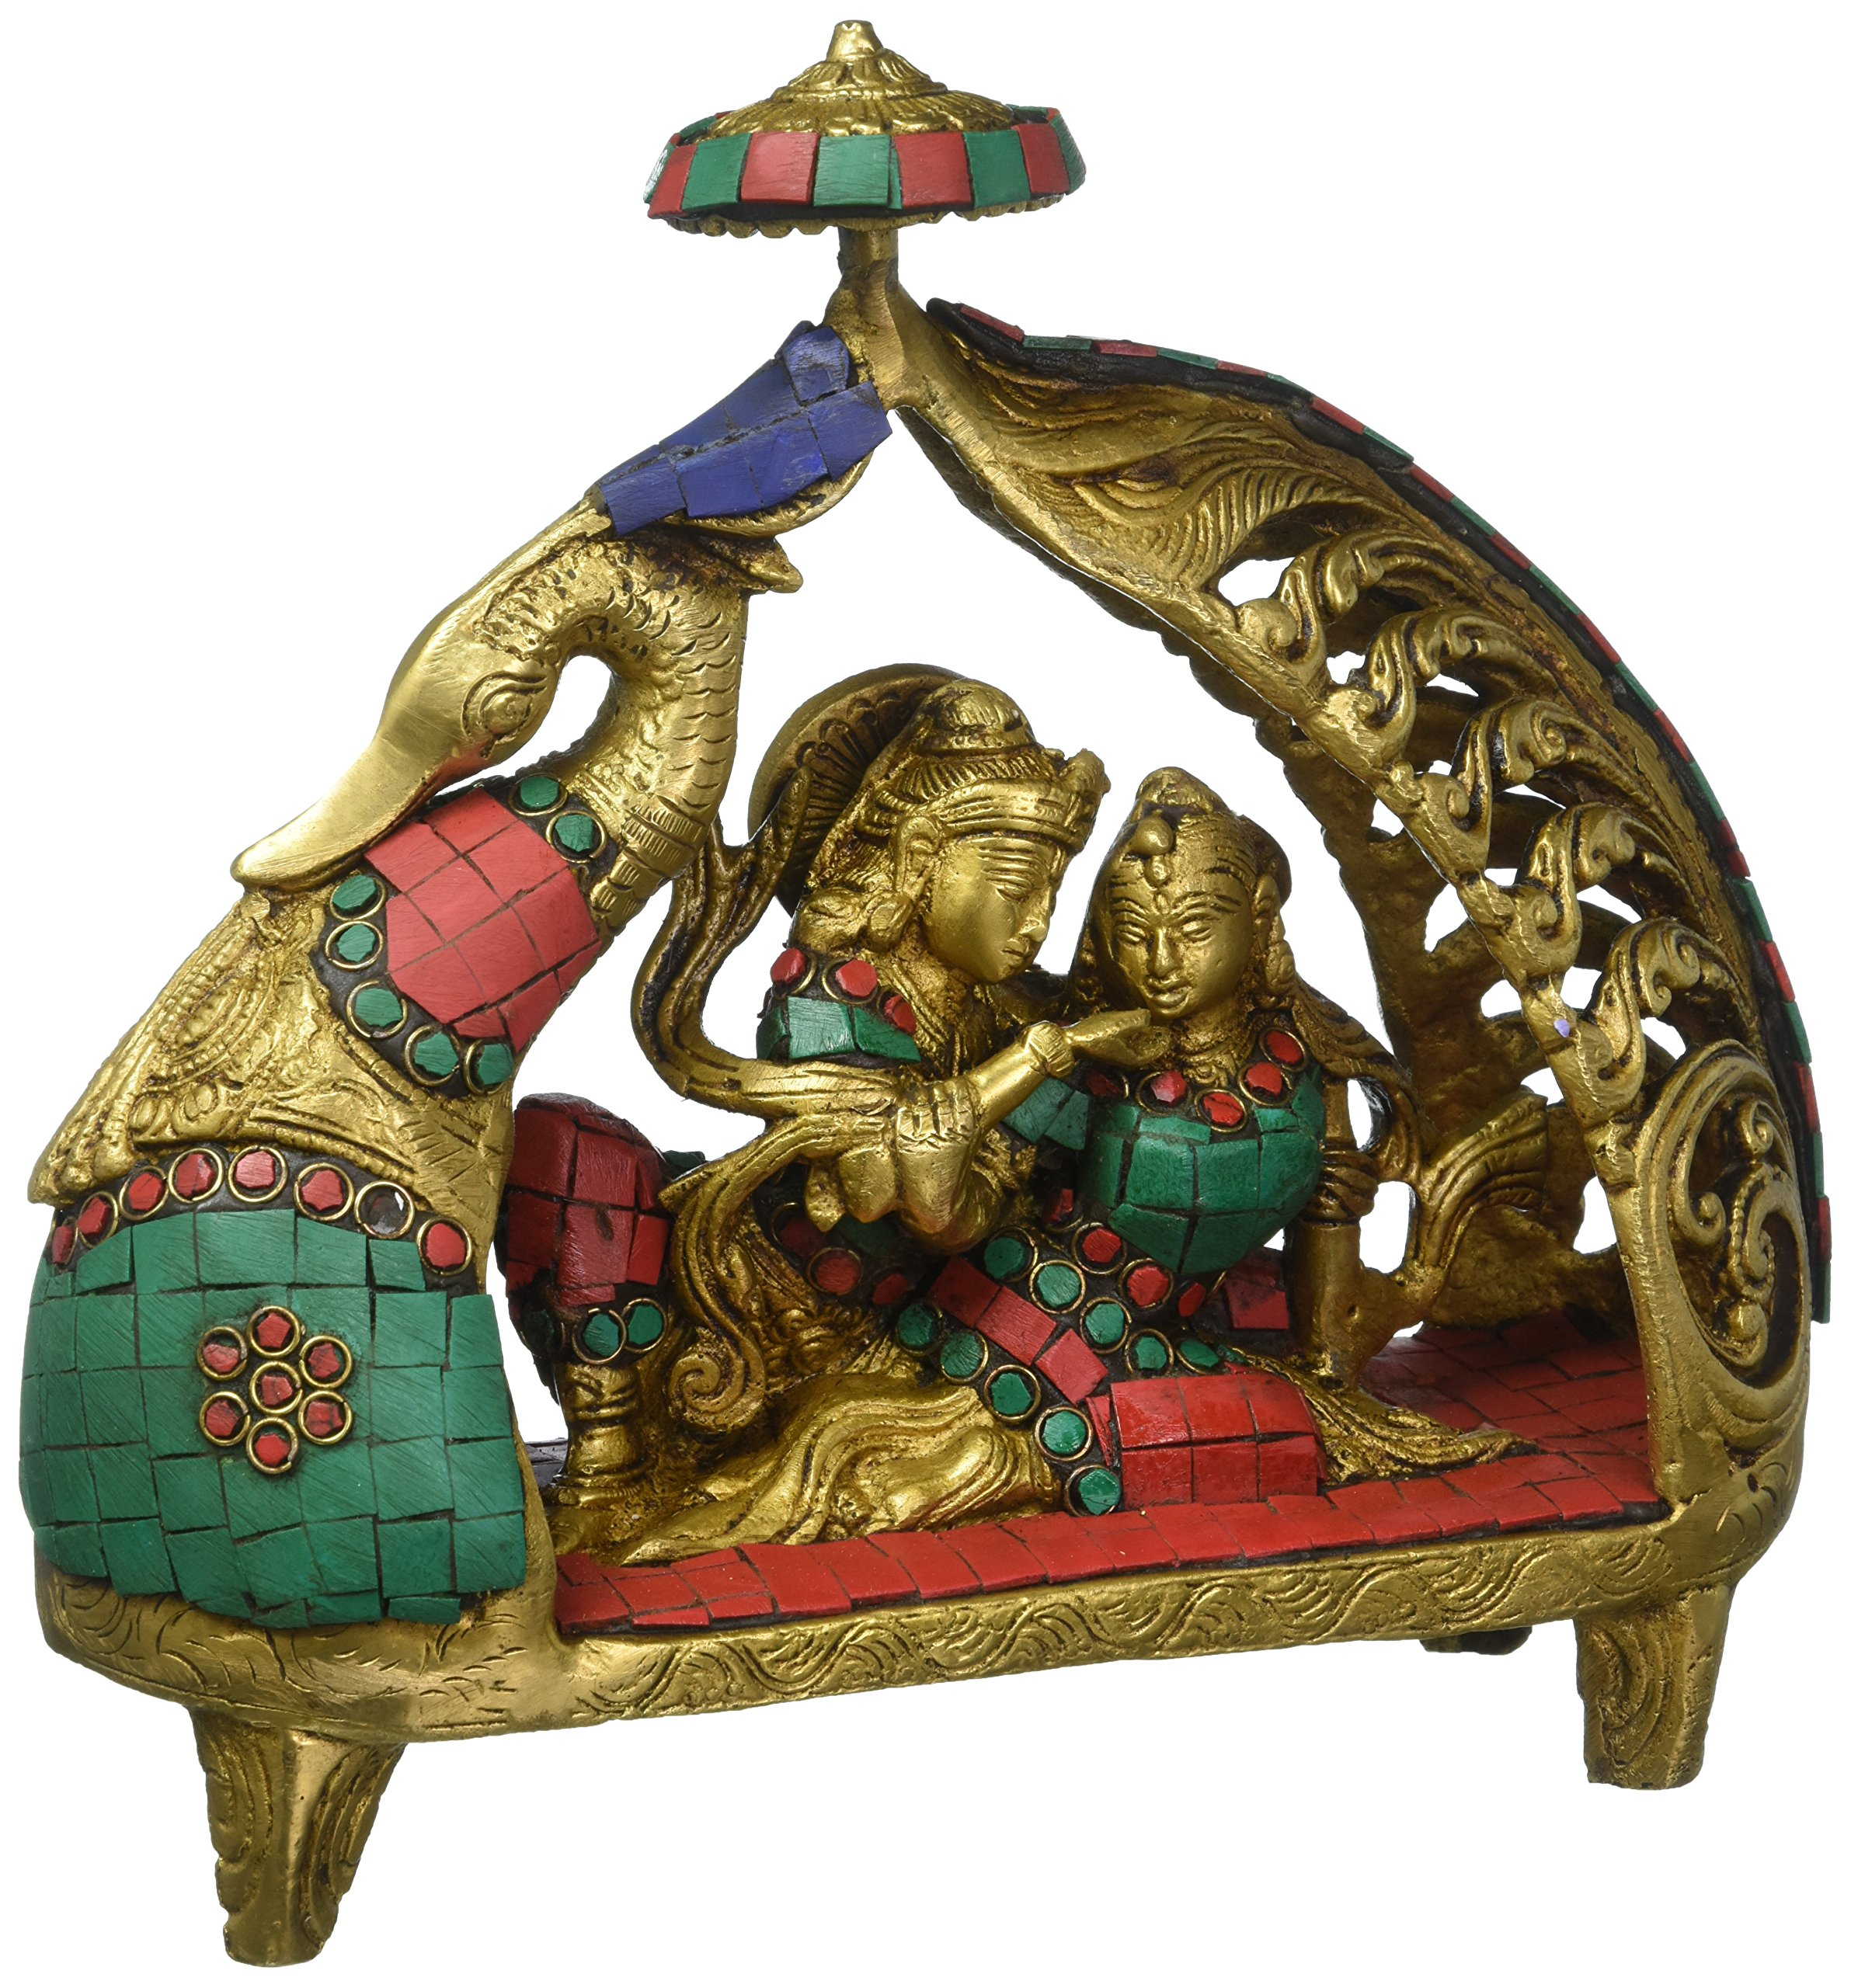 Aone India Large Rare Radha Krishna statue in a peacock shape boat - Brass Sculpture with Hand wortk of Turquoise Coral Stones + Cash Envelope (Pack Of 10)